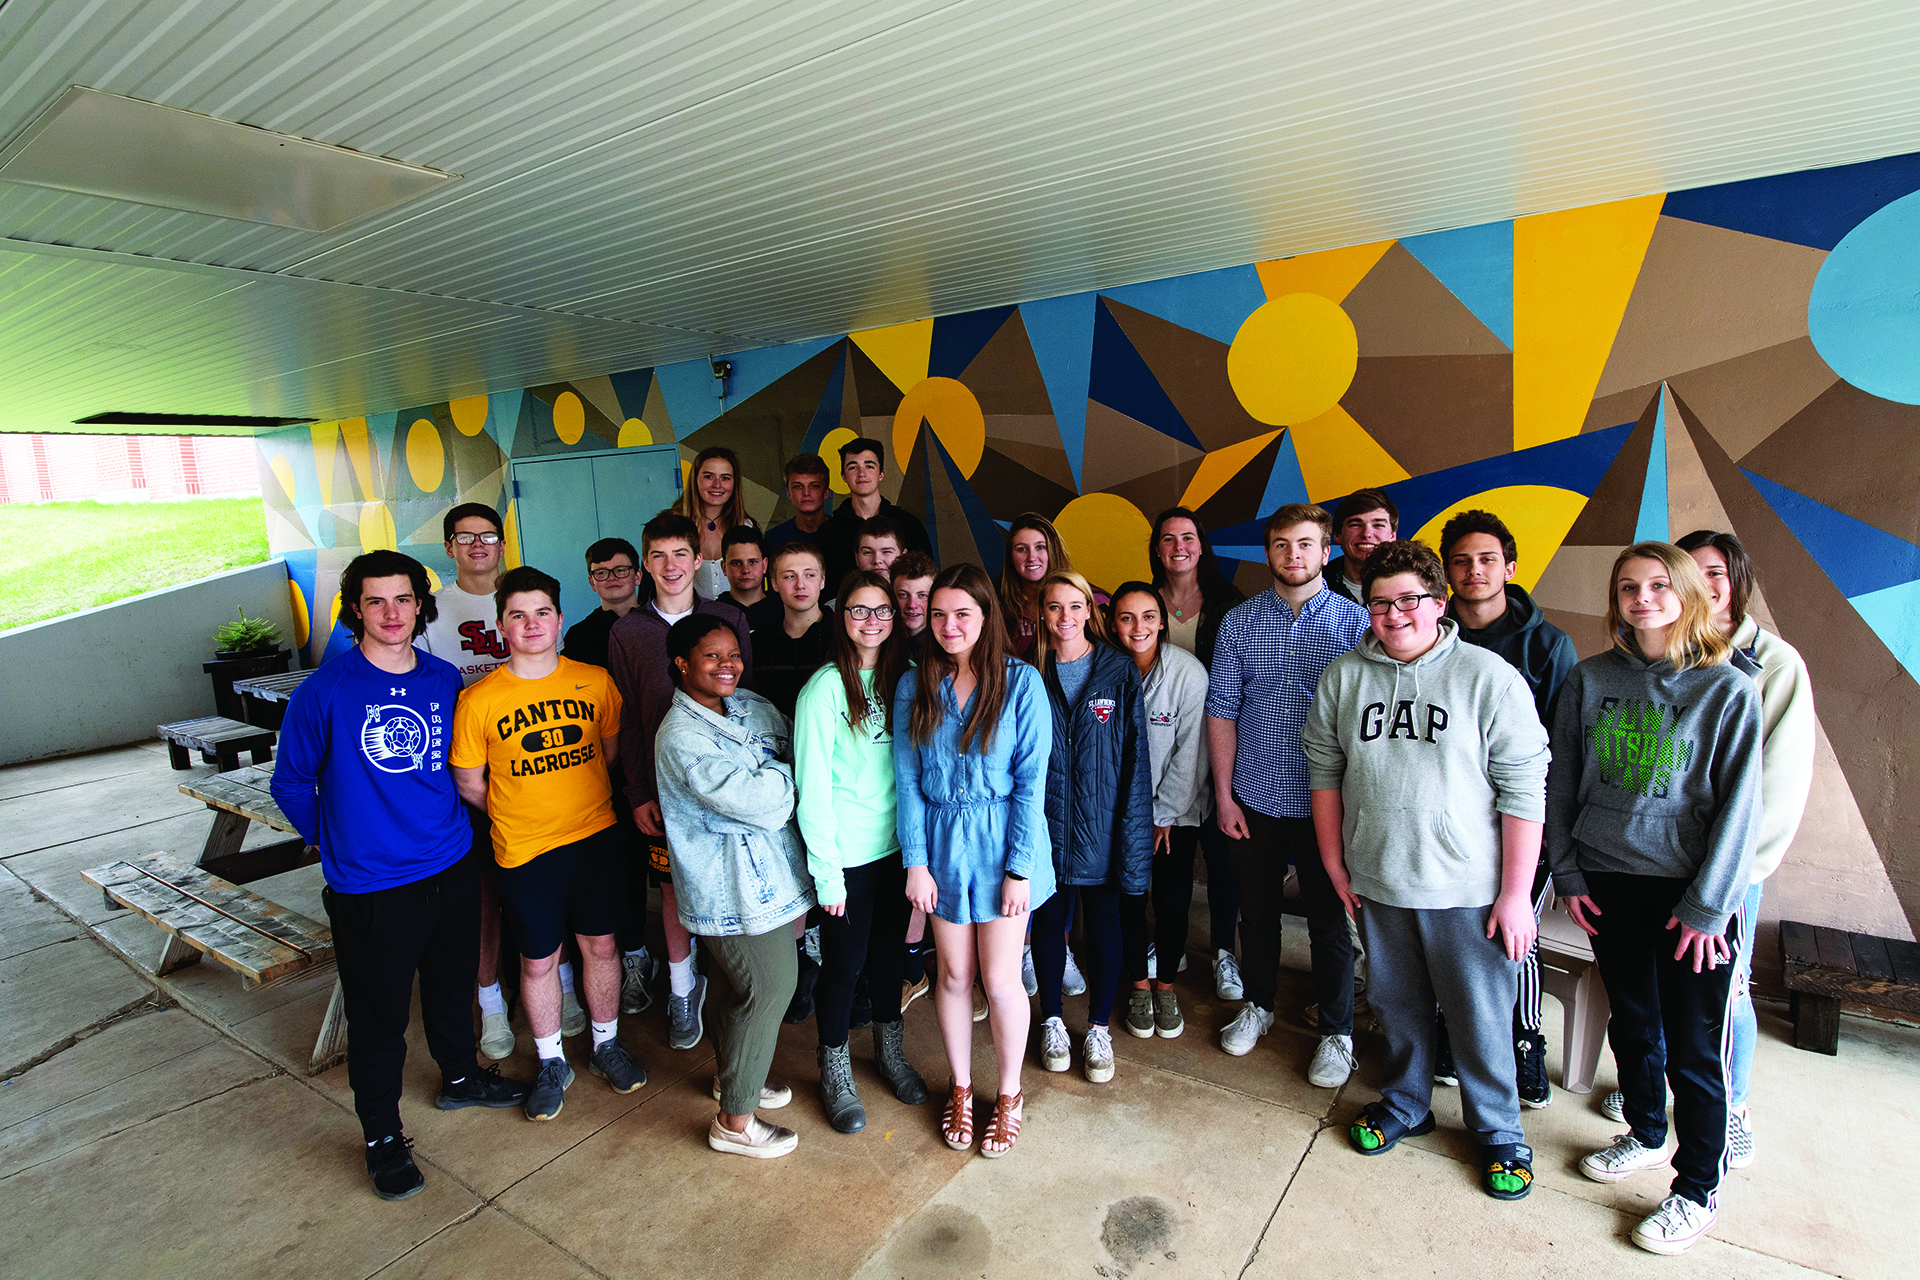 St.Lawrence and Canton Central High School students at the mural site.